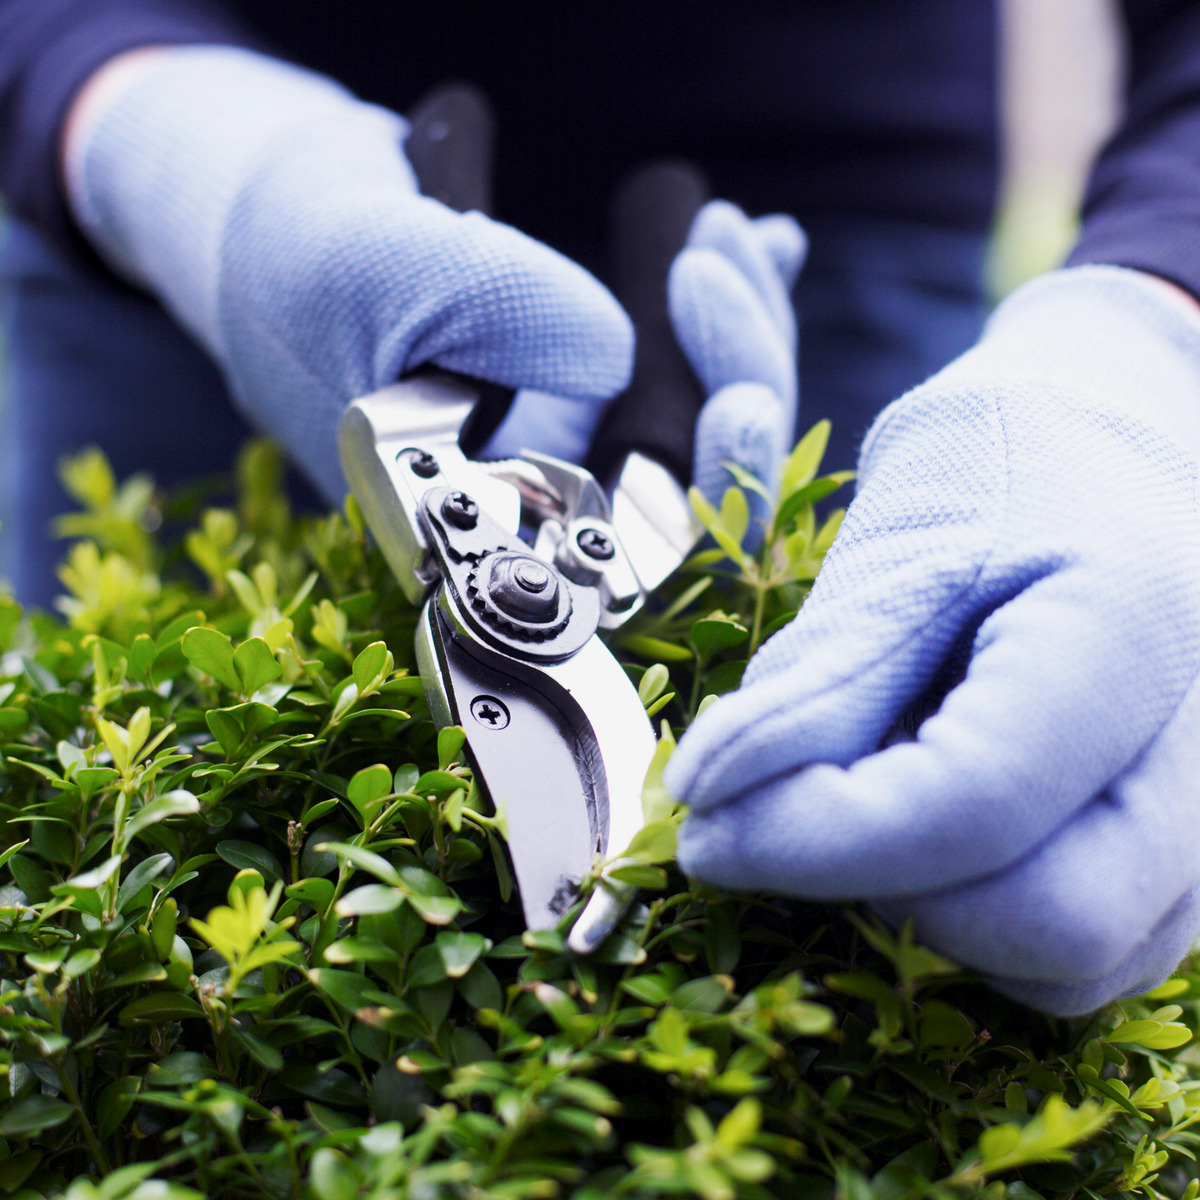 11 Best Garden Shears and Pruners: 2019